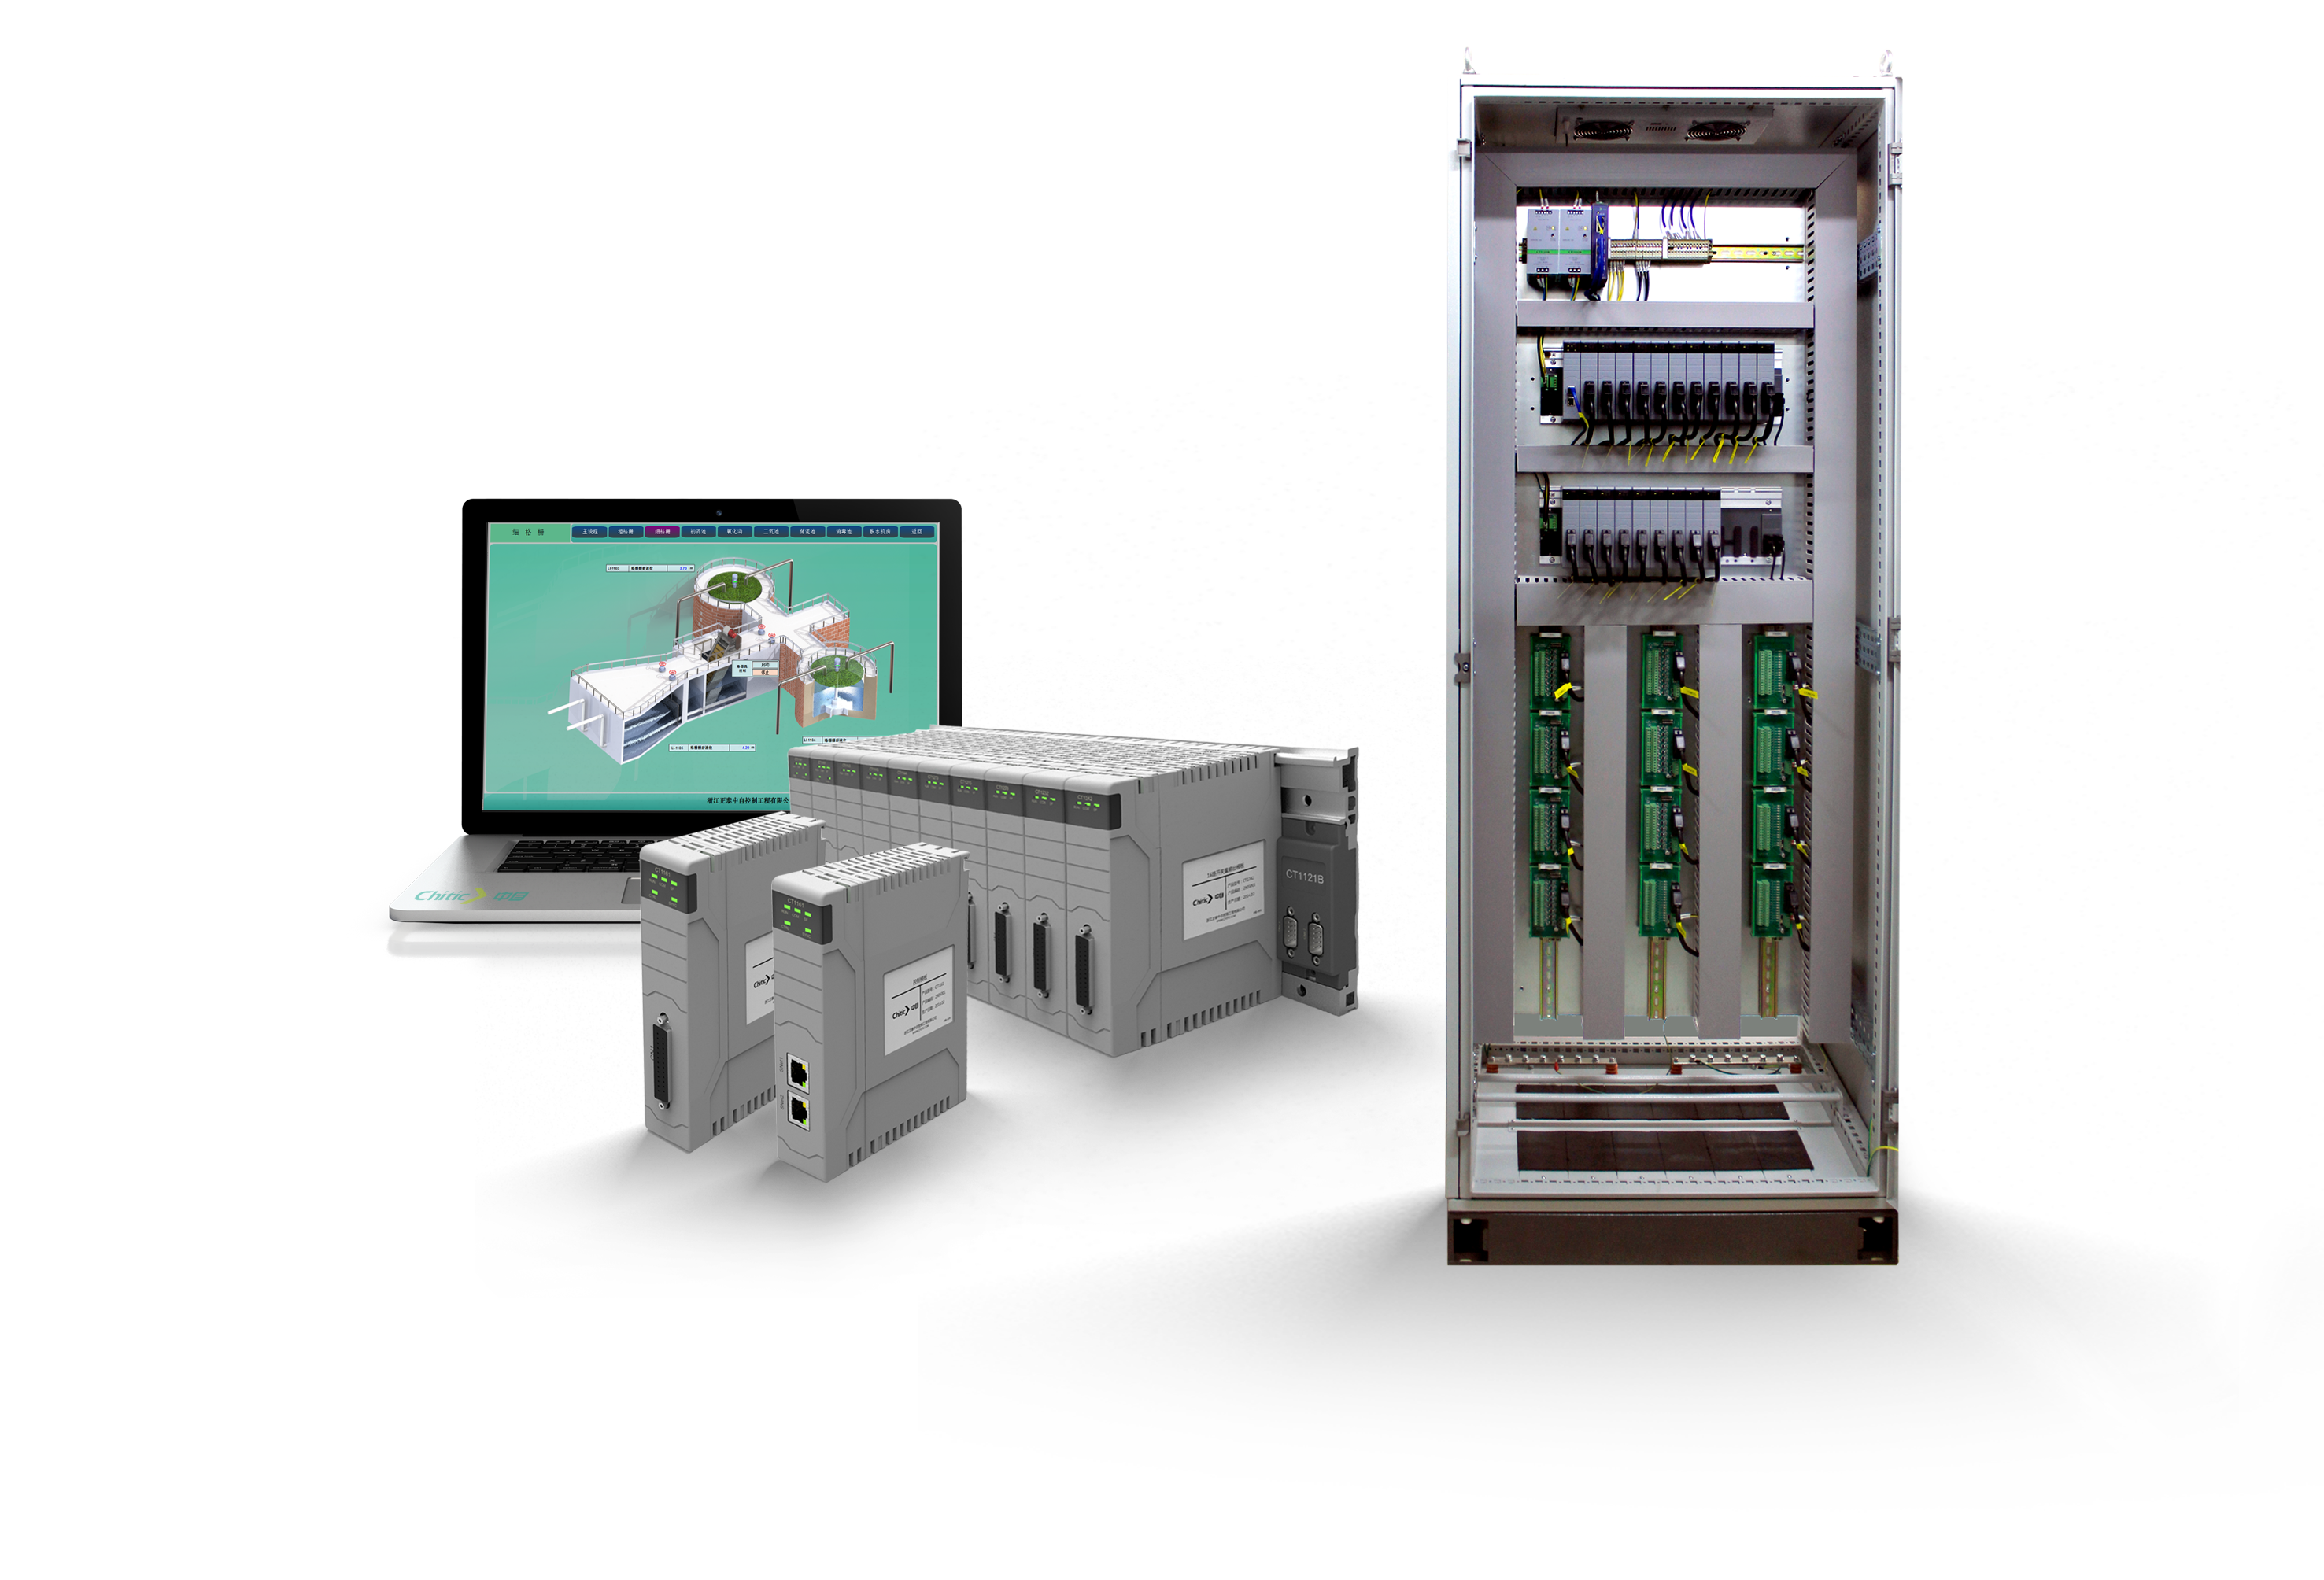 PCS1800 Distributed Control System